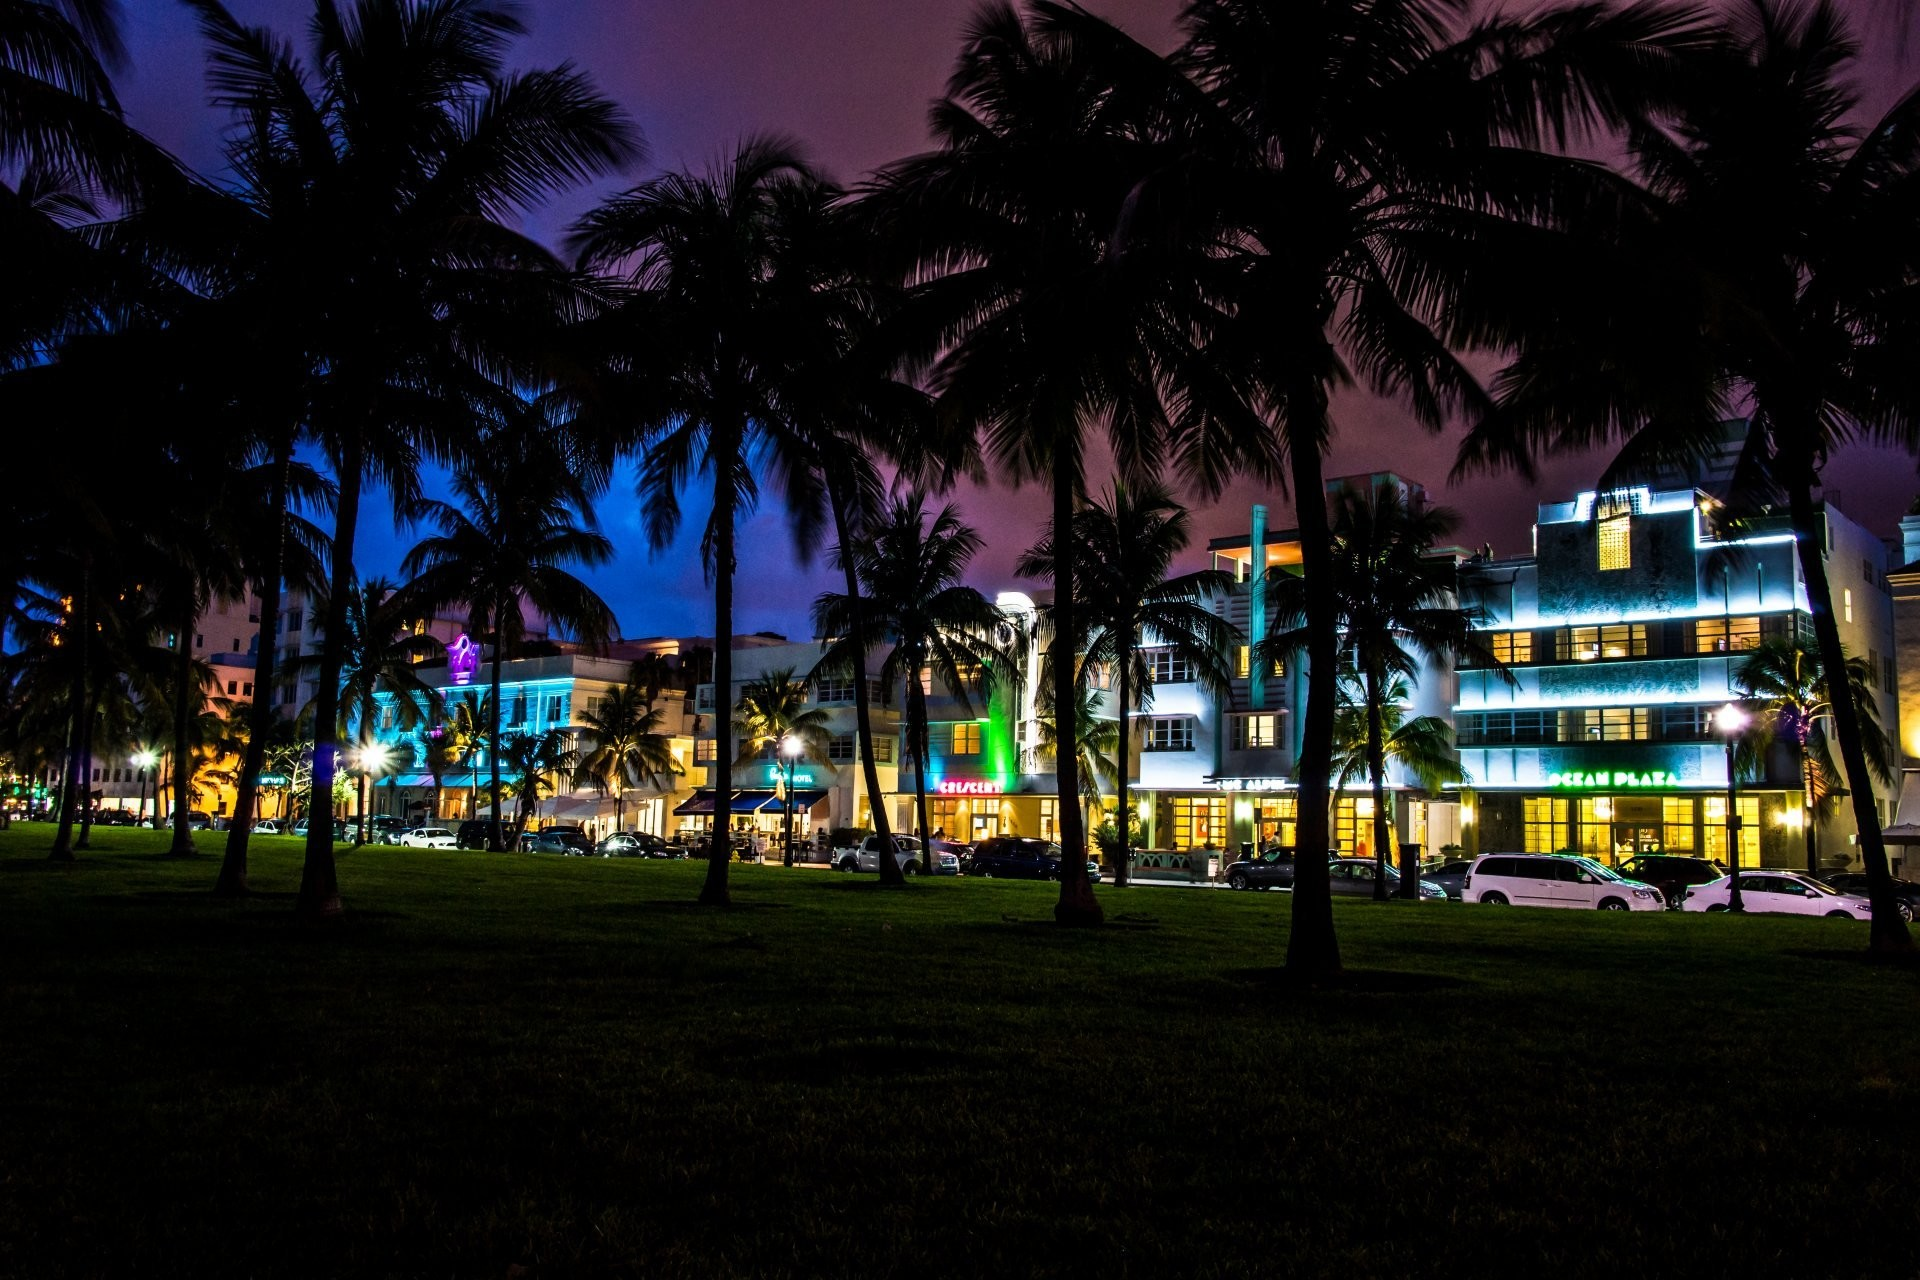 1920x1280 miami florida florida miami south beach night palm cars house hotels vice  city